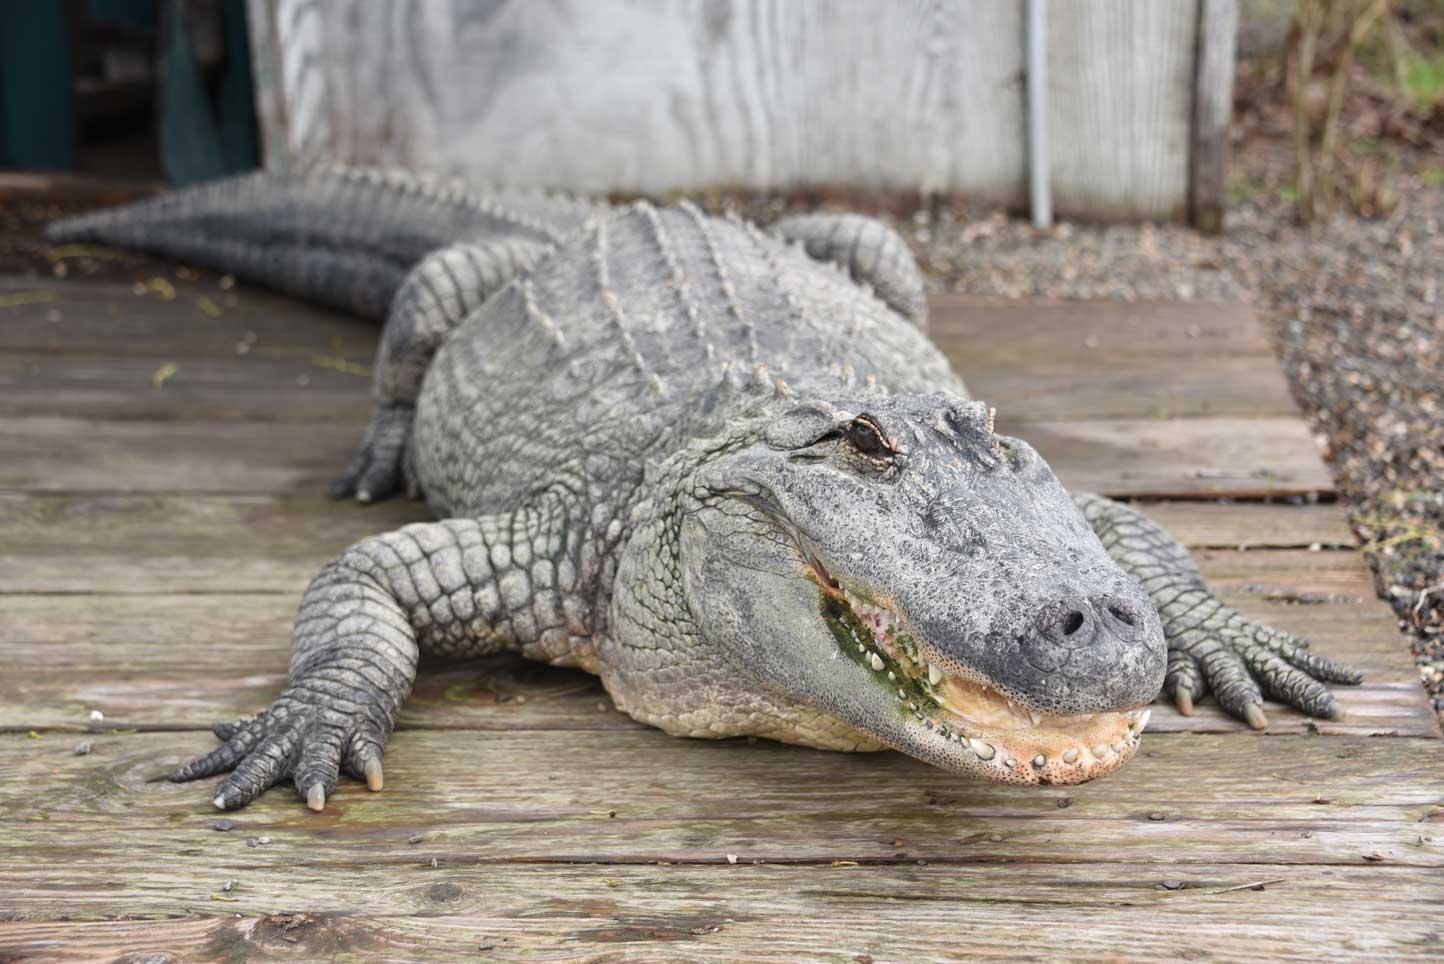 reptiles amphibians animals insects zoo